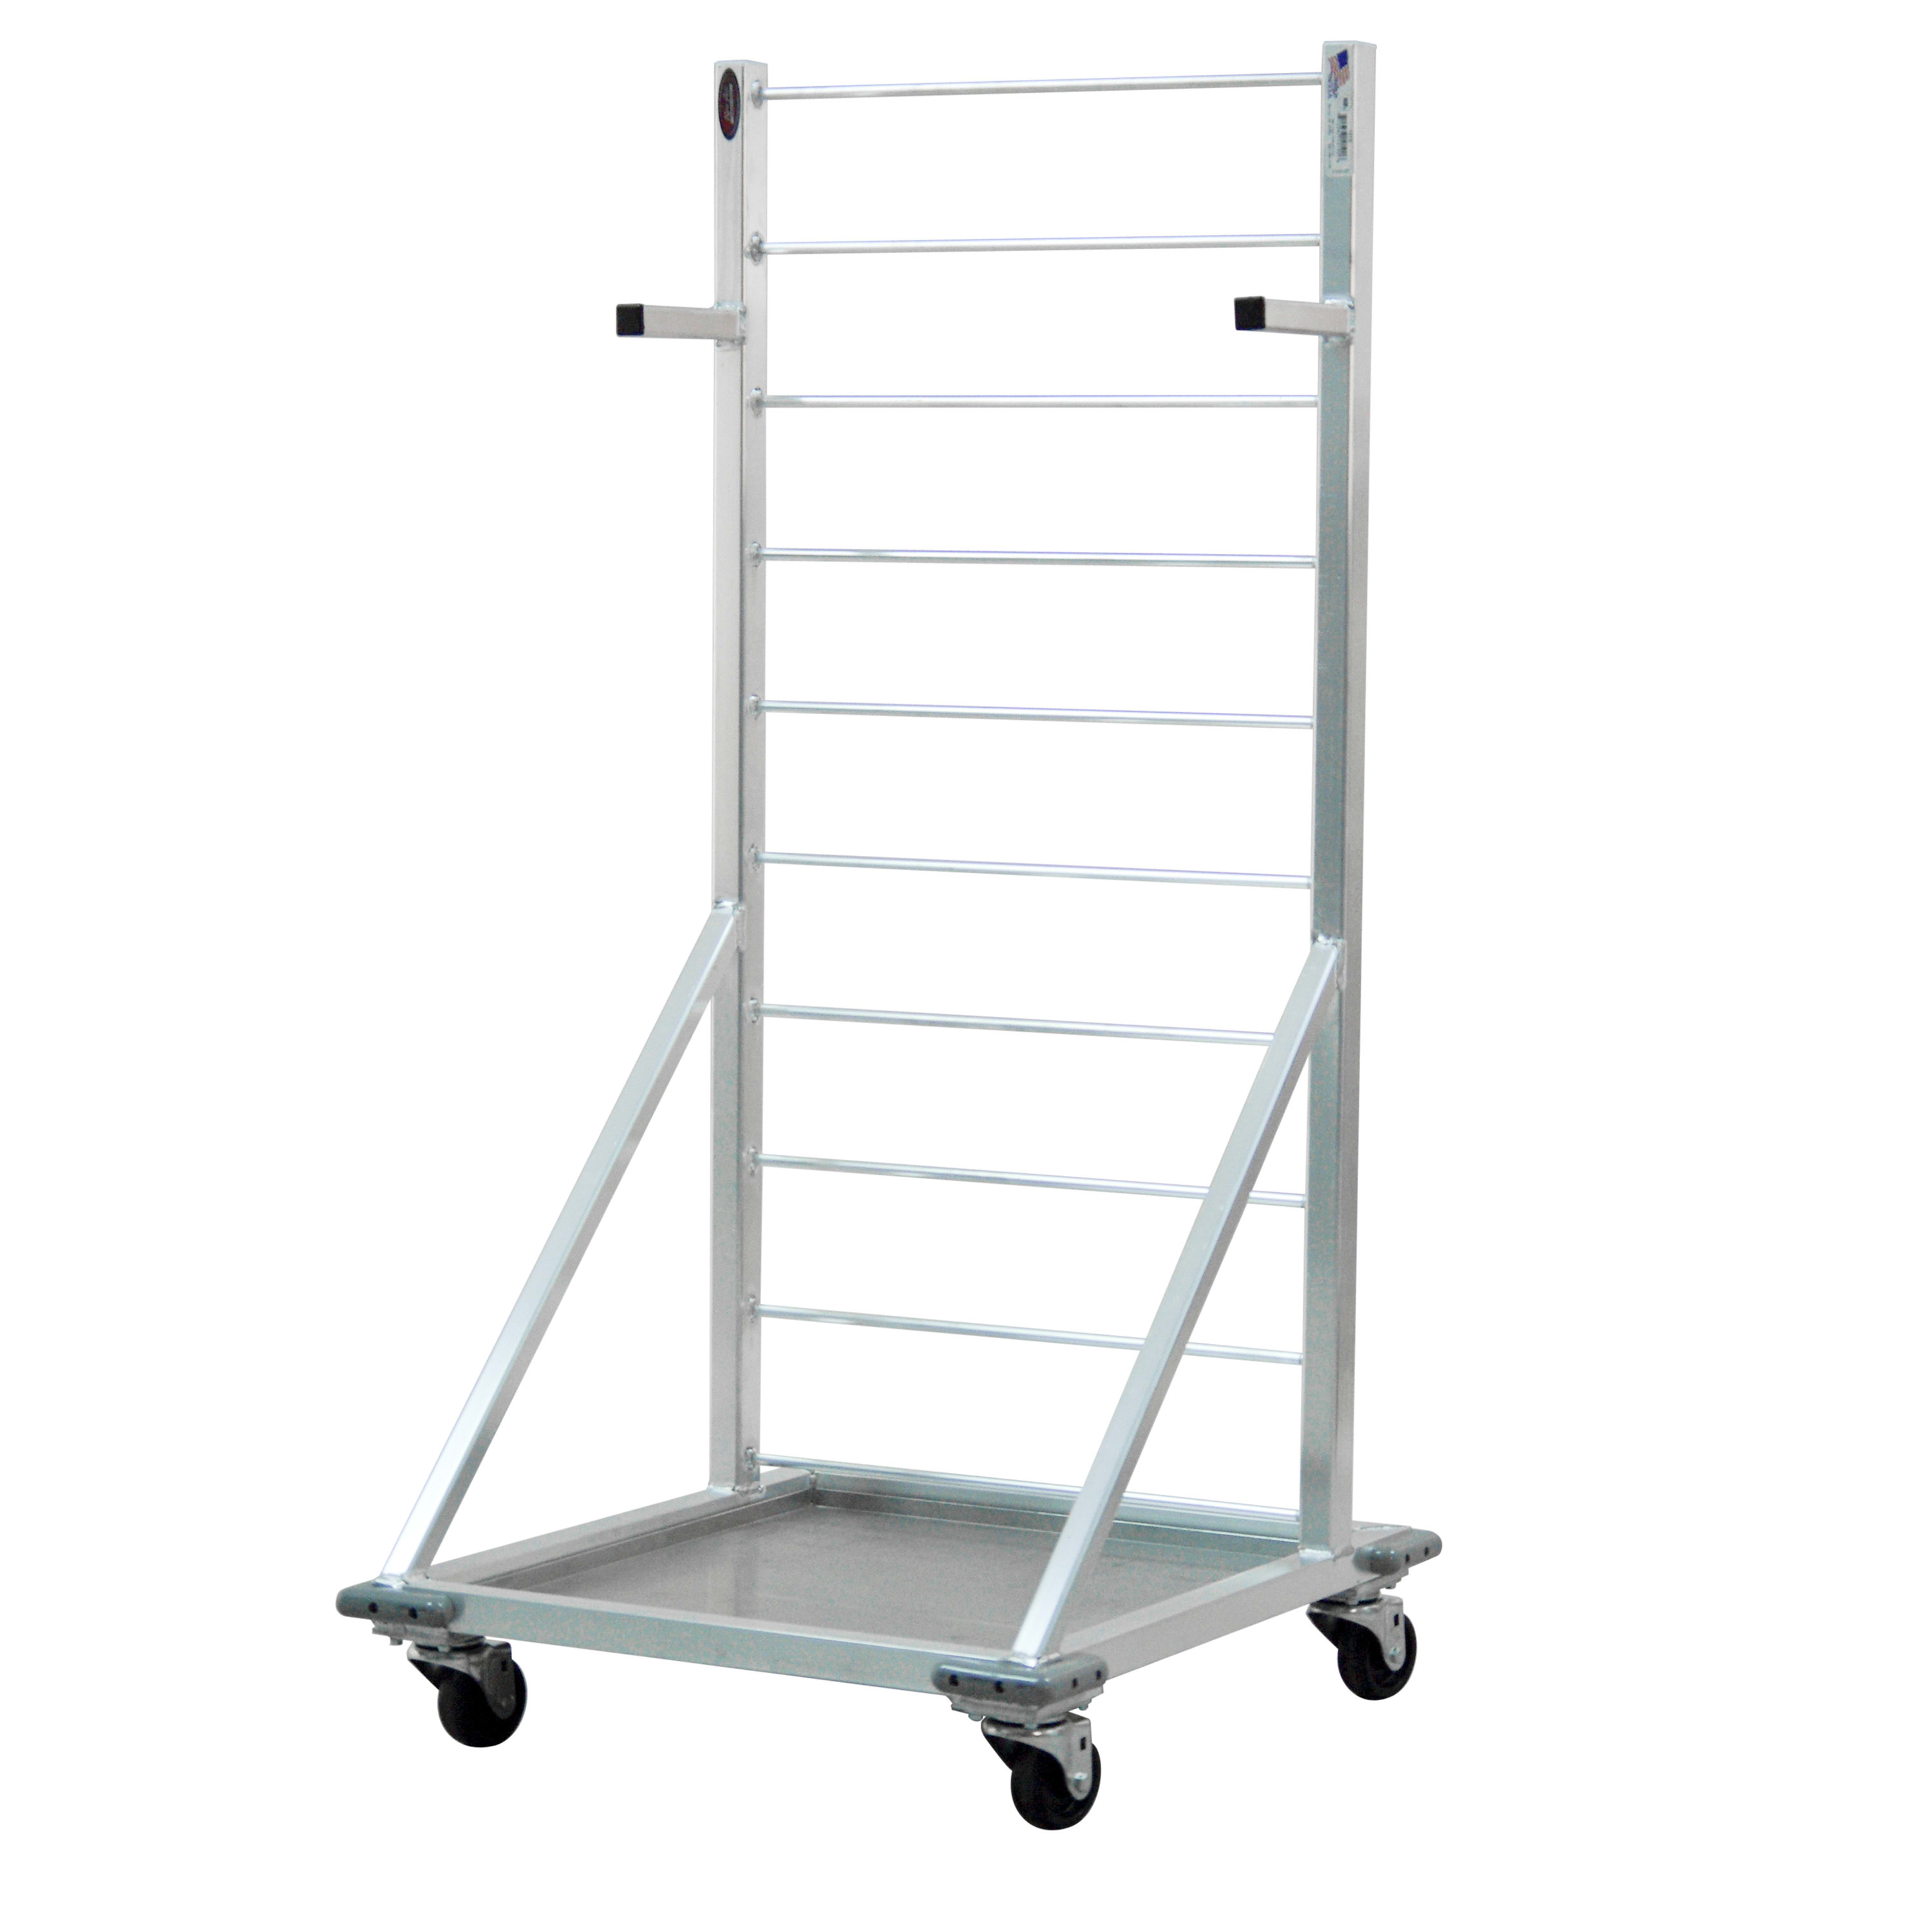 "New Age 1215 Fry Basket Rack w/ 27 Basket Capacity & 3"" Casters, 52.5x24.5x27"", Aluminum"